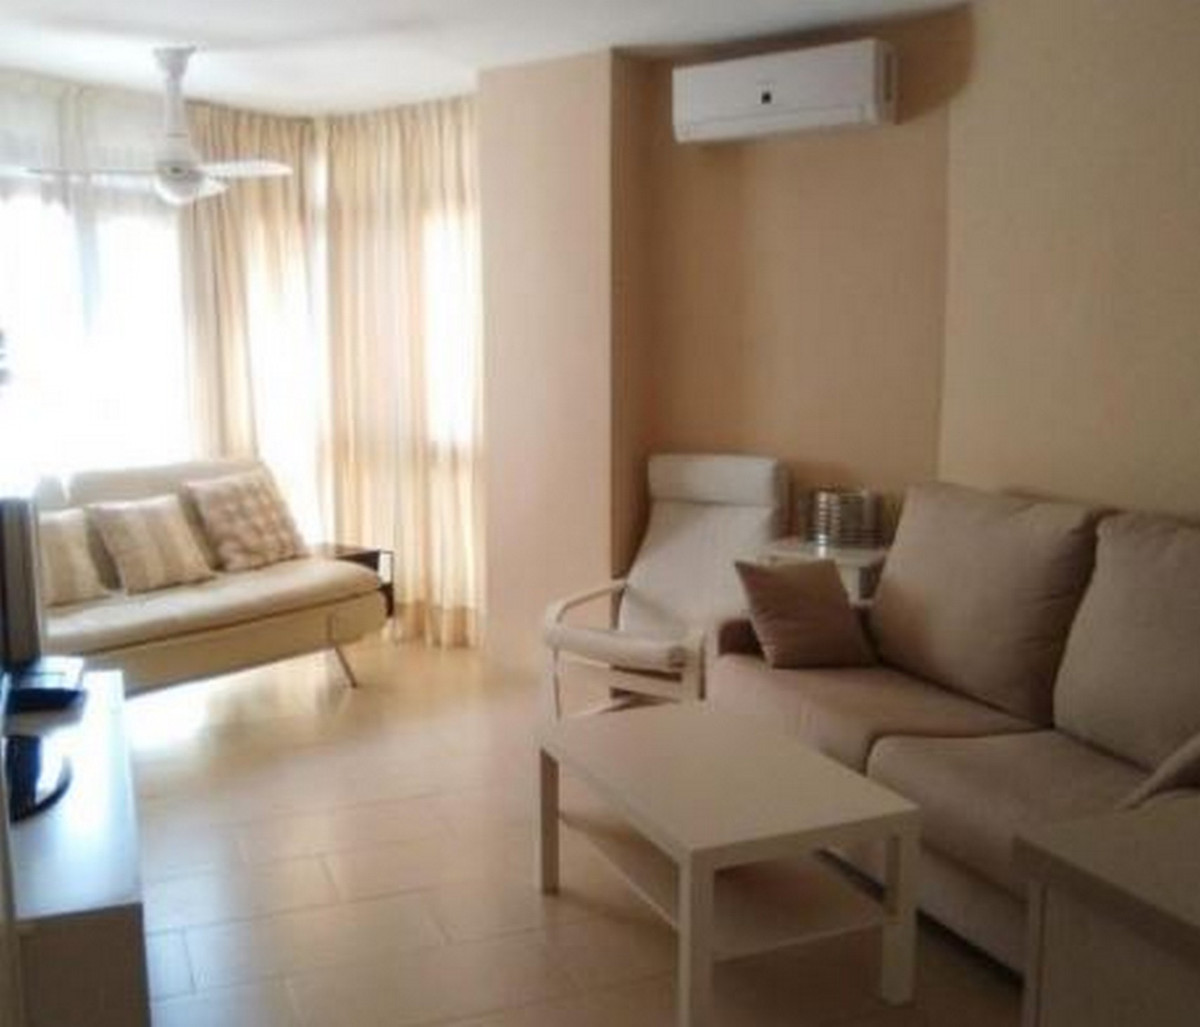 Fantastic studio a few steps from the beach and located in the center of Fuengirola. It has a living, Spain